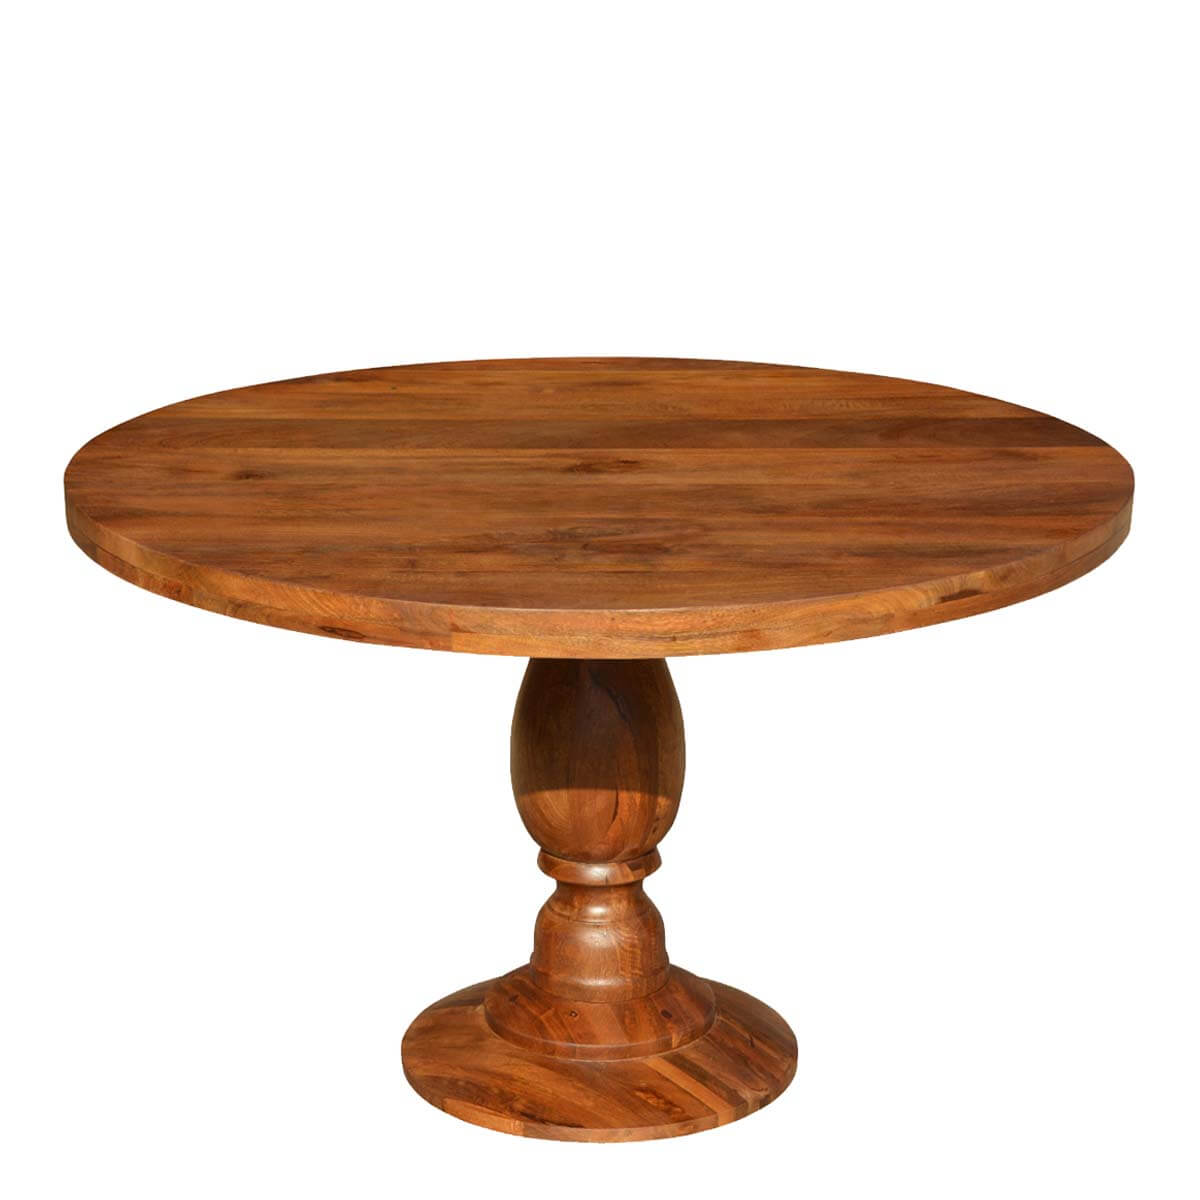 Rustic colonial american solid wood 48 round pedestal for Pedestal dining table